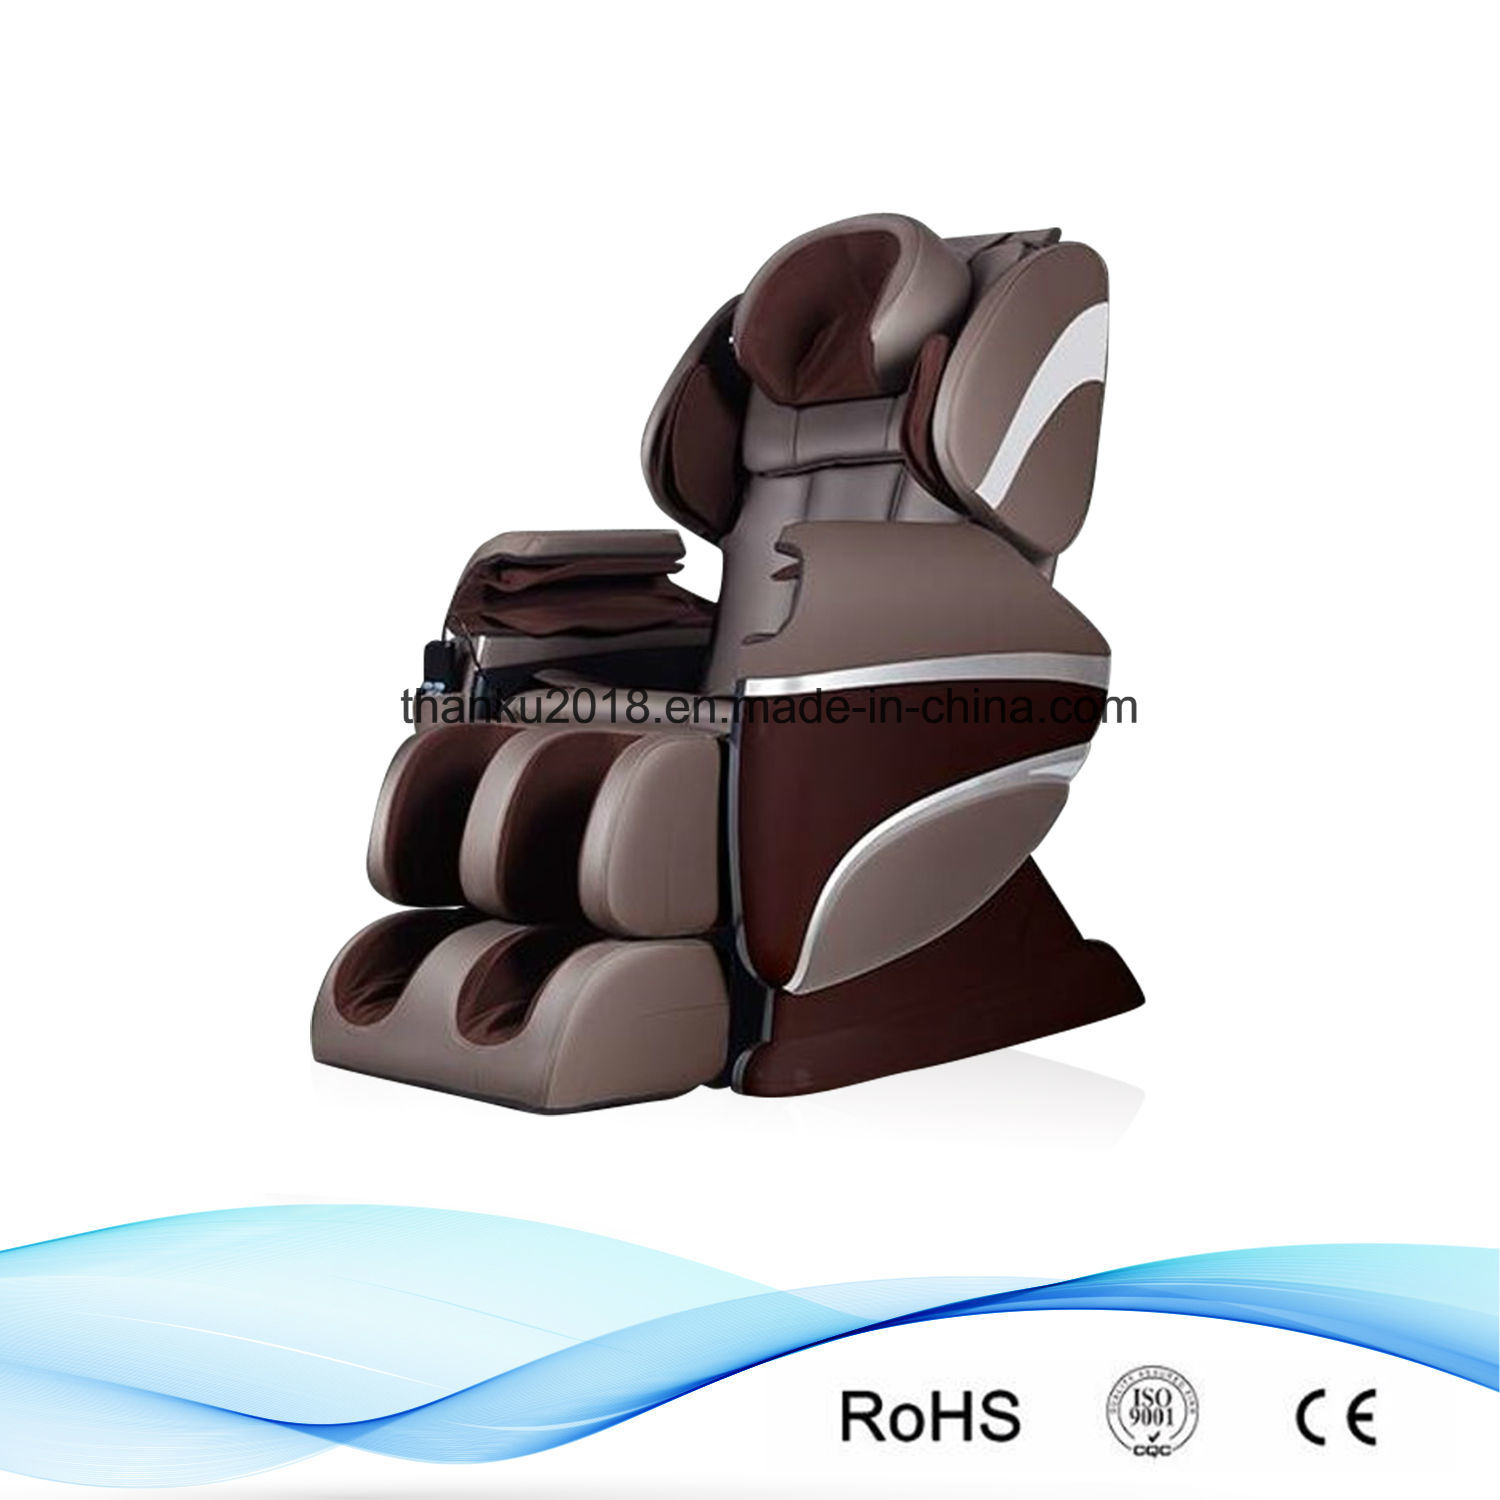 China Multi Functional Lazy Boy Recliner Master Mage Chair In India Hot Relax For Office